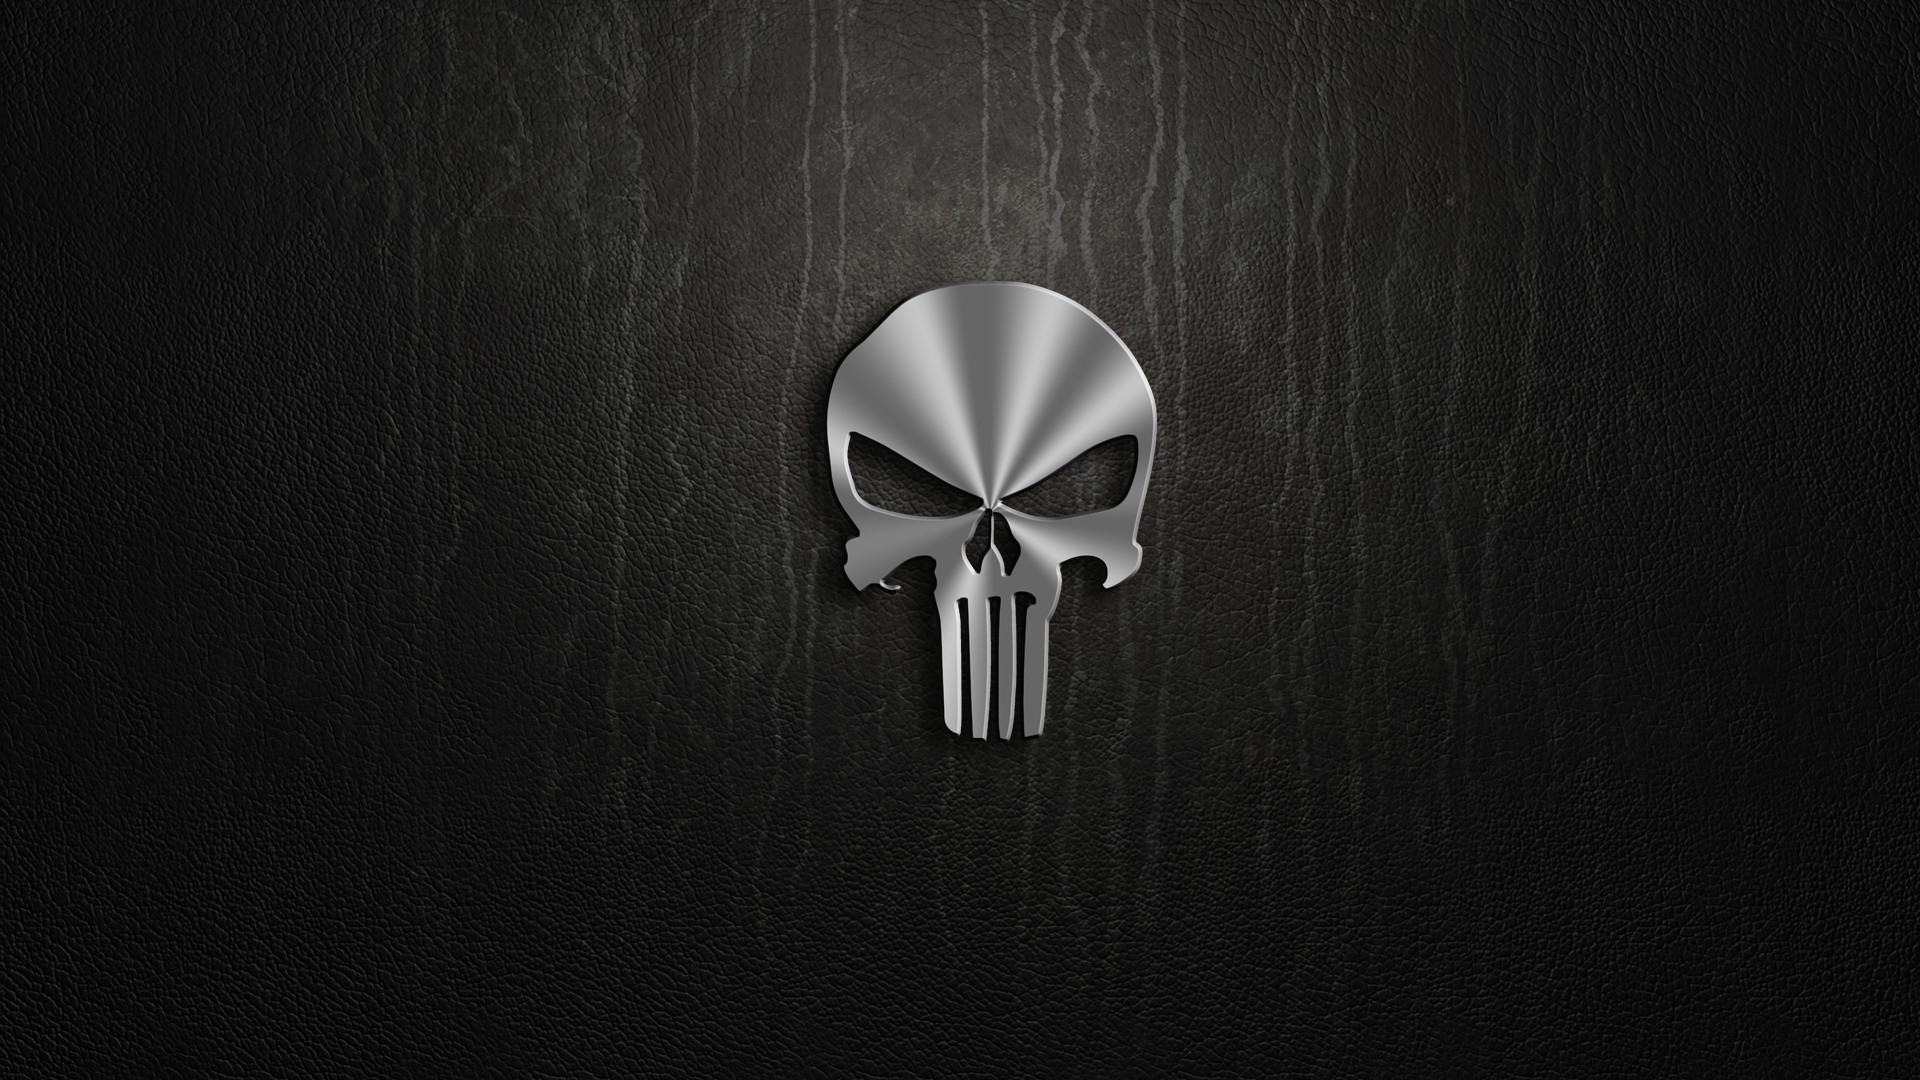 Punisher Skull Wallpaper HD  67  images  1920x1080 HD Wallpaper   Background ID 402208